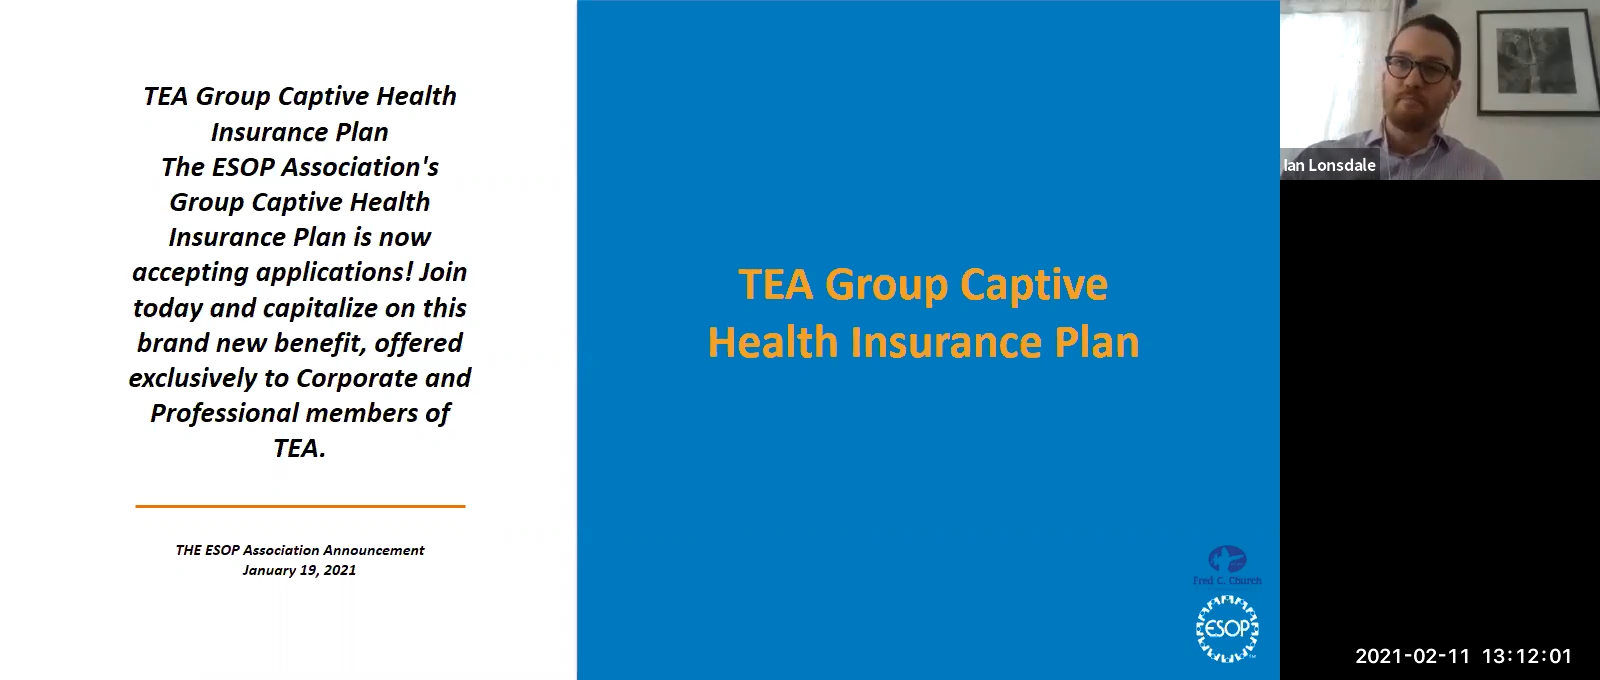 TEA Group Captive Health Insurance webinar